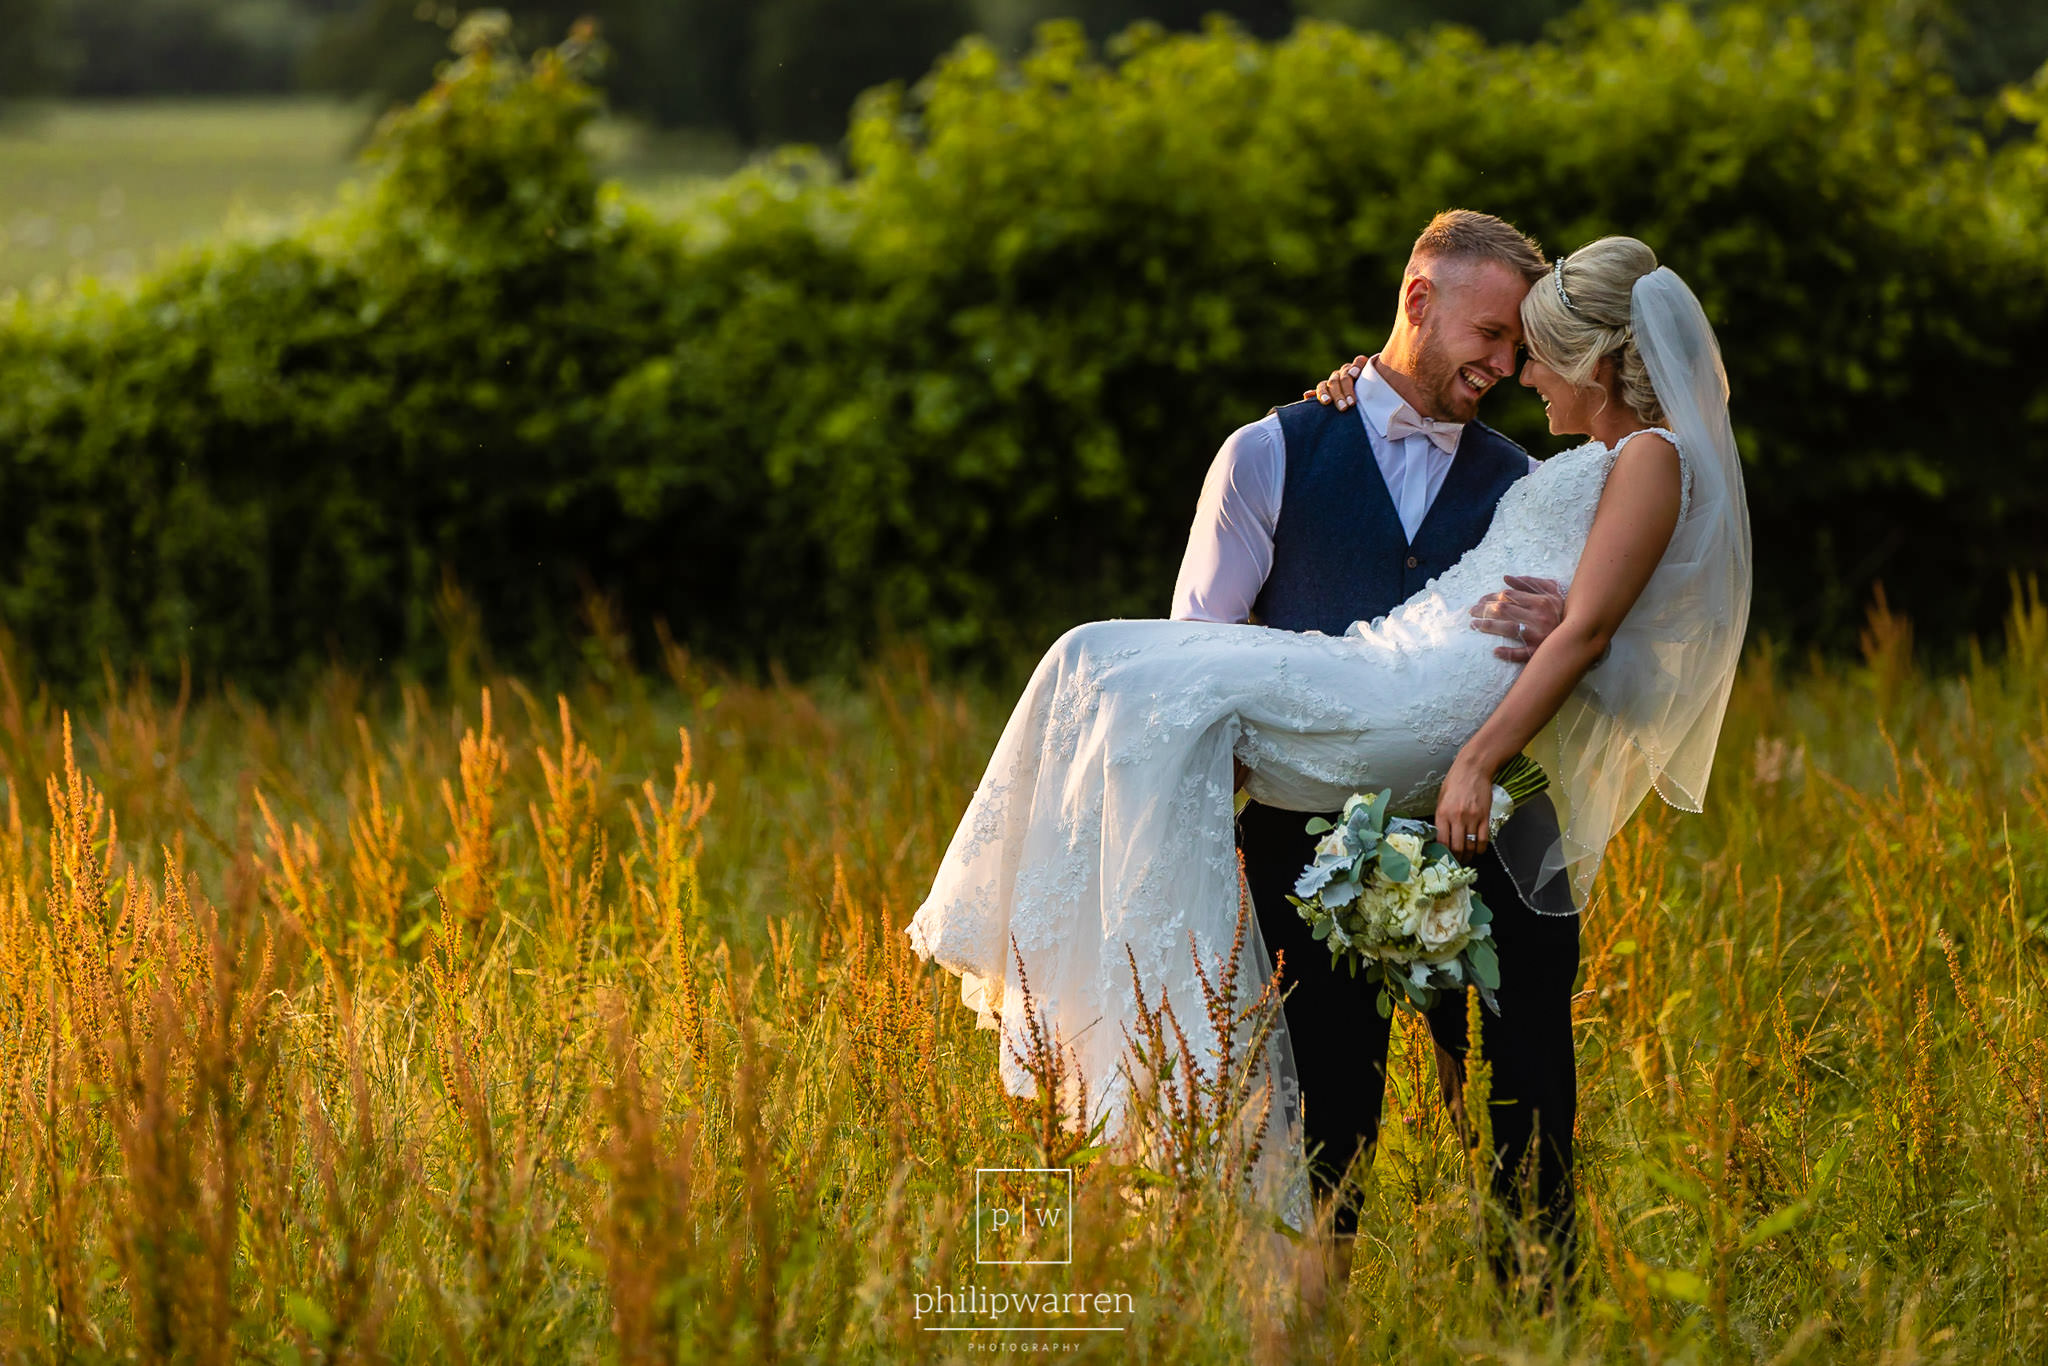 groom picking up bride standing in a field